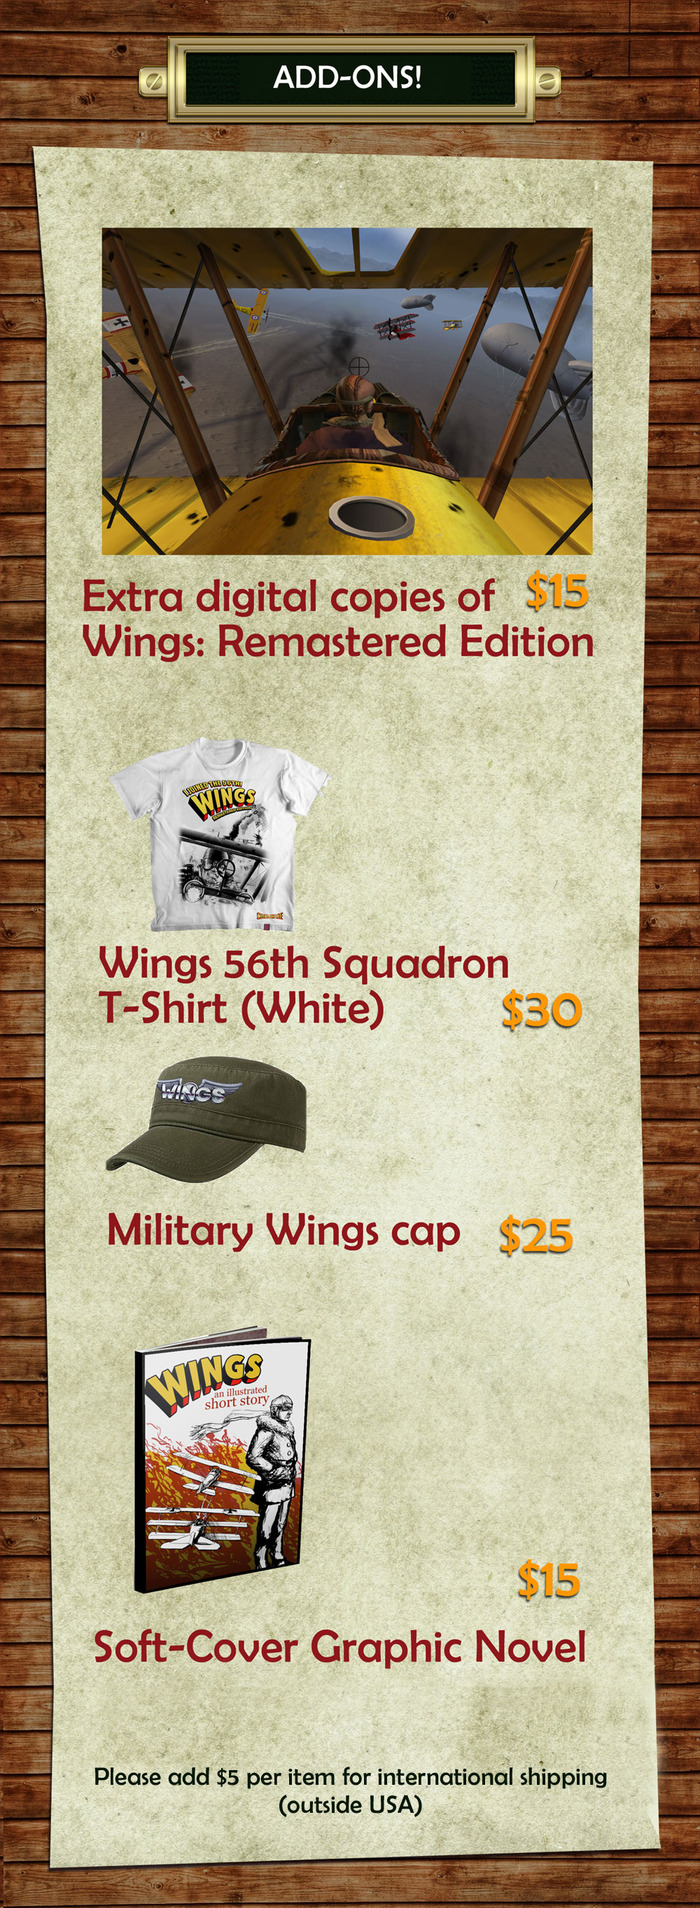 Purchase these items and help fund Wings Remastered Edition further!